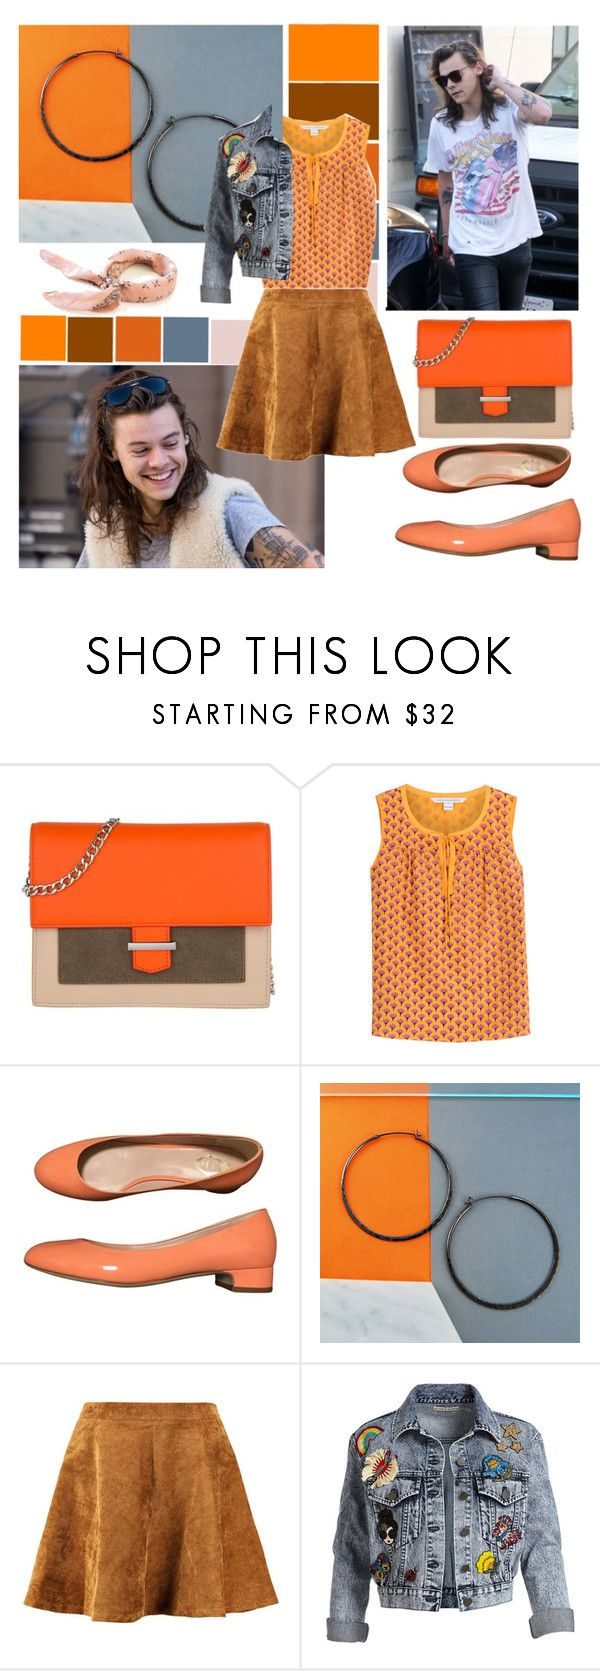 """harry styles' girlfriend's fashion"" by chakayuko ❤ liked on Polyvore featuring HUGO, Diane Von Furstenberg, Unützer, Otis Jaxon, Alice + Olivia, OneDirection, harrystyles and 1d"